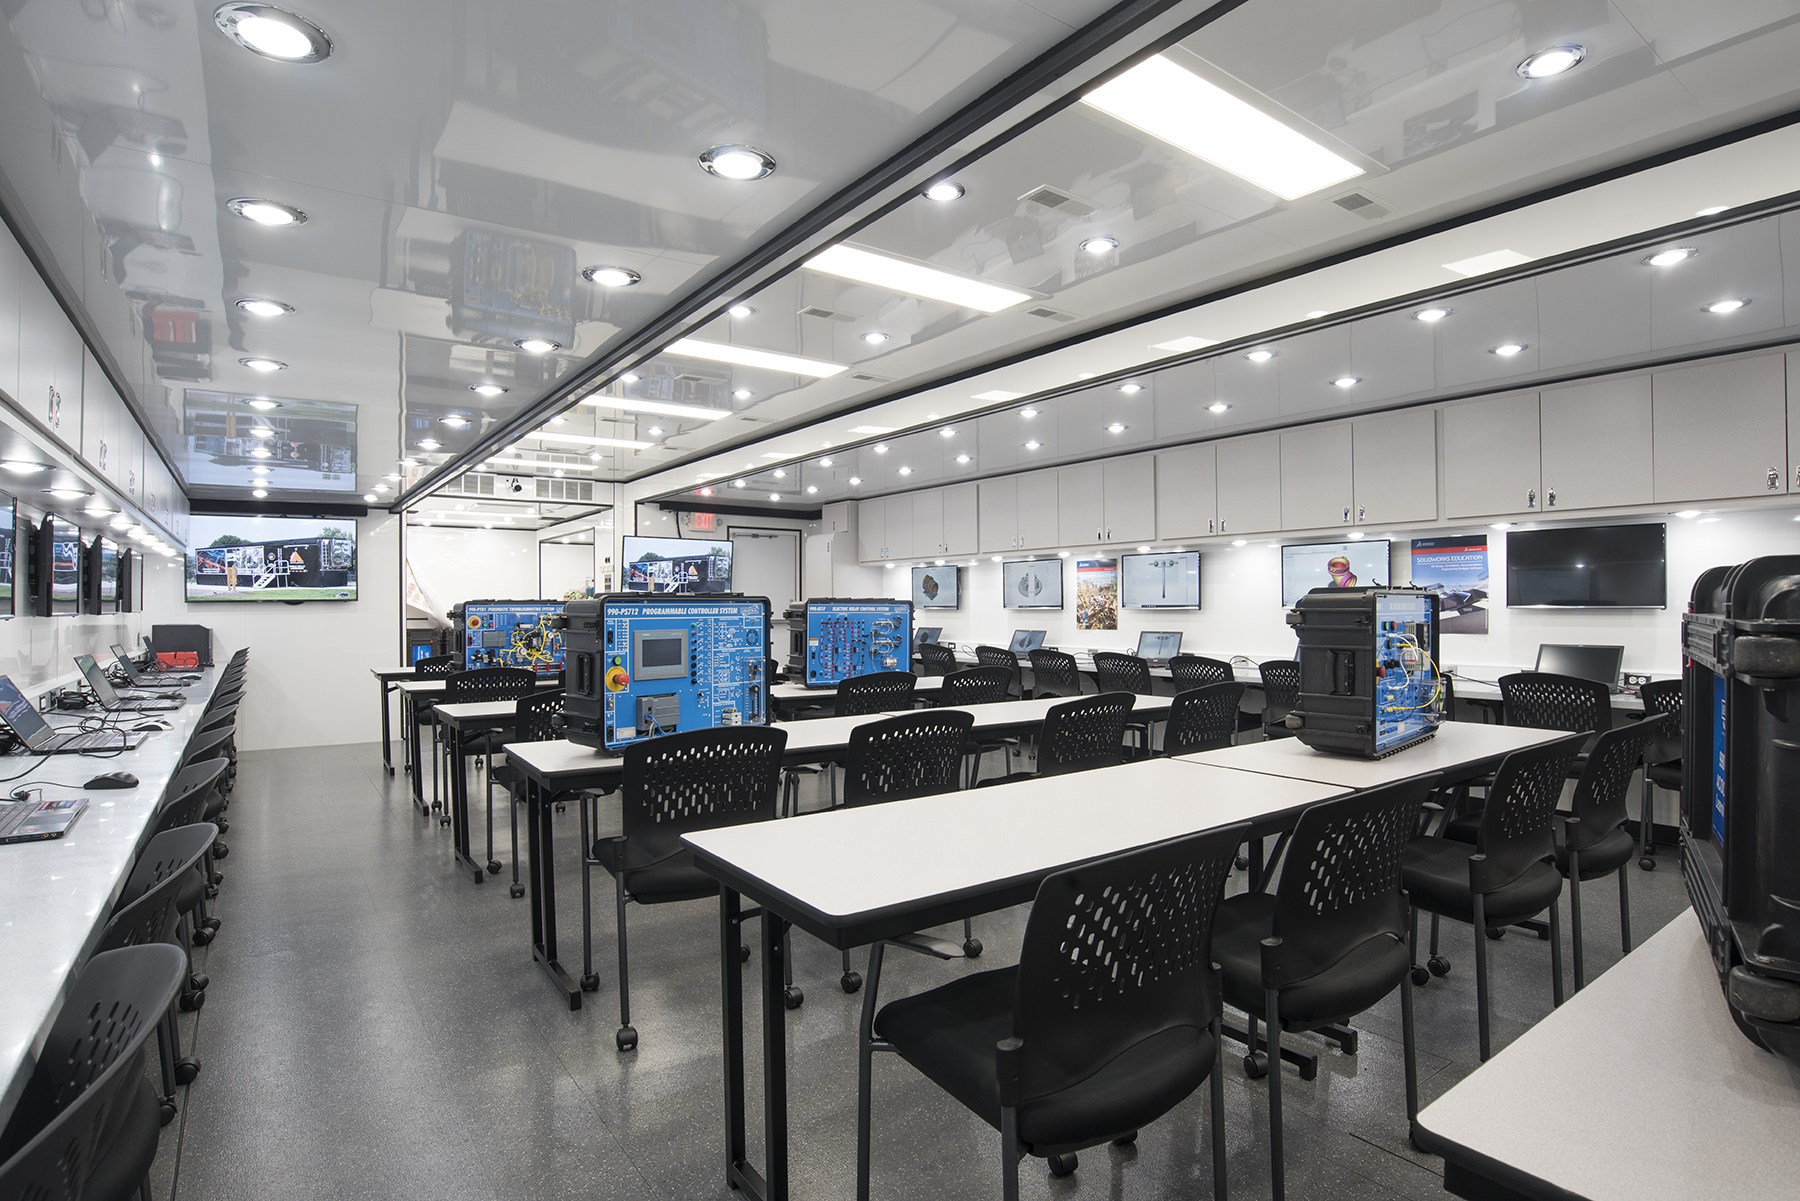 The Ashley Furniture Mobile Skills Lab loaded with Industry 4.0 educational equipment